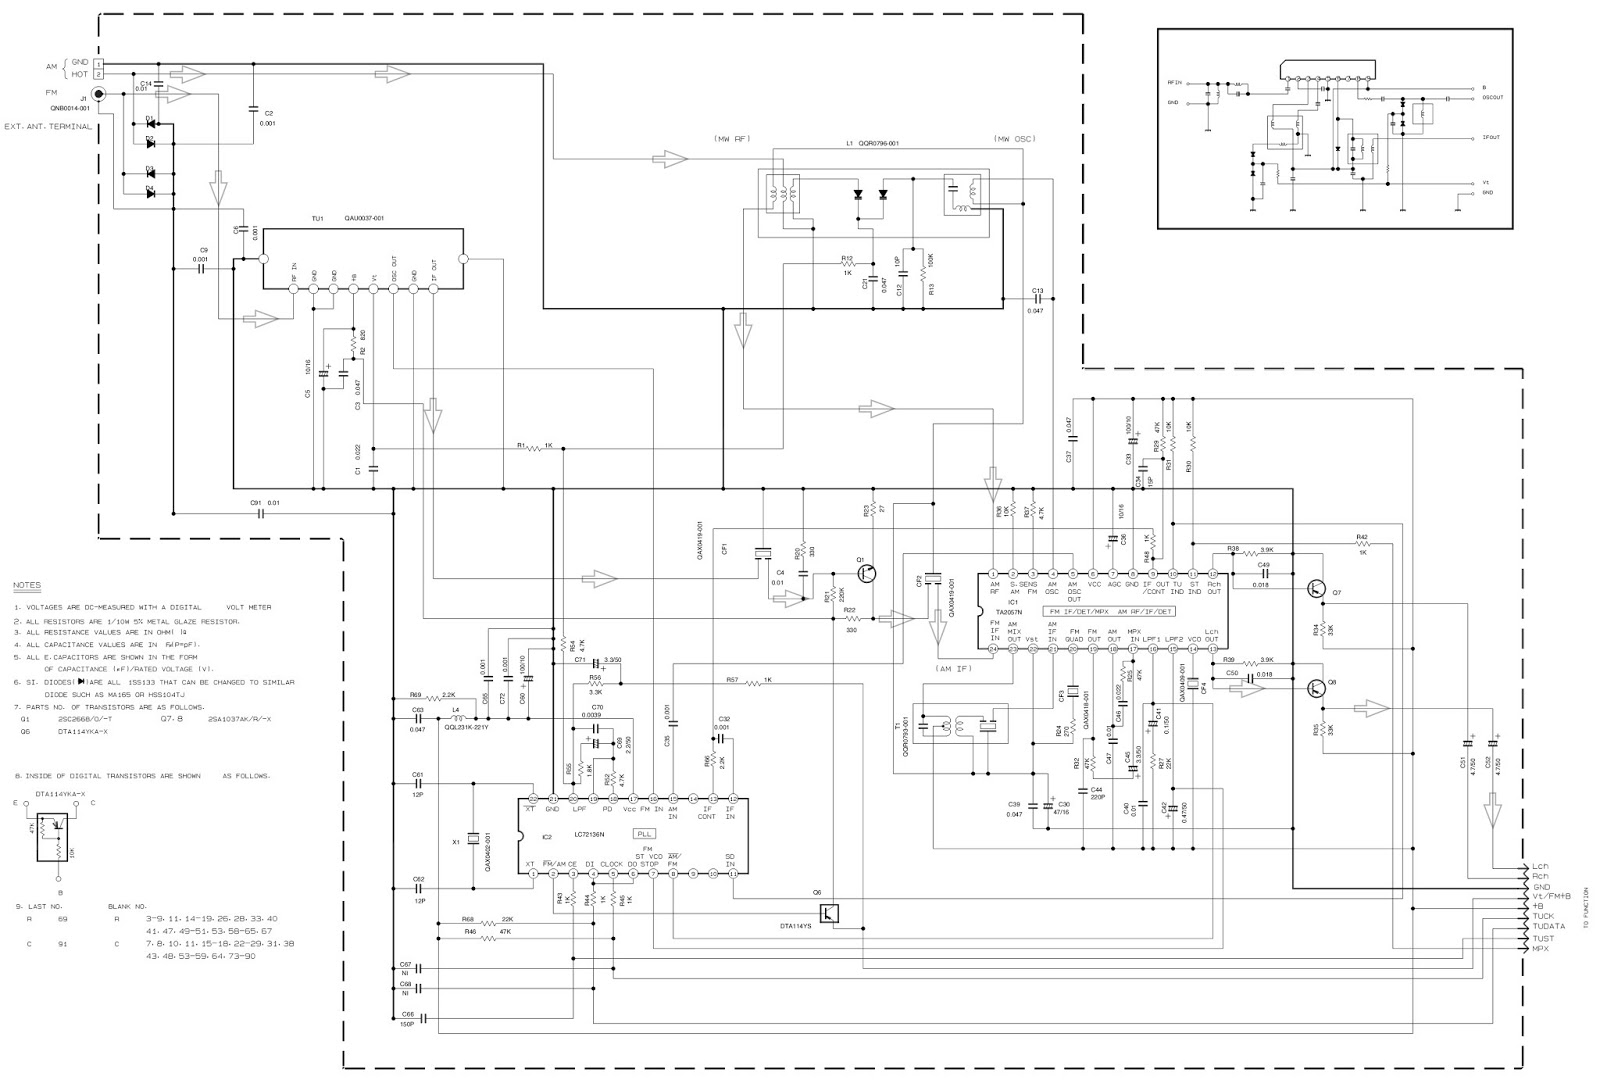 Tv Remote Circuit Board Diagram Real Wiring Onida Washing Machine Schematic Universal Control Set Up Basic Components